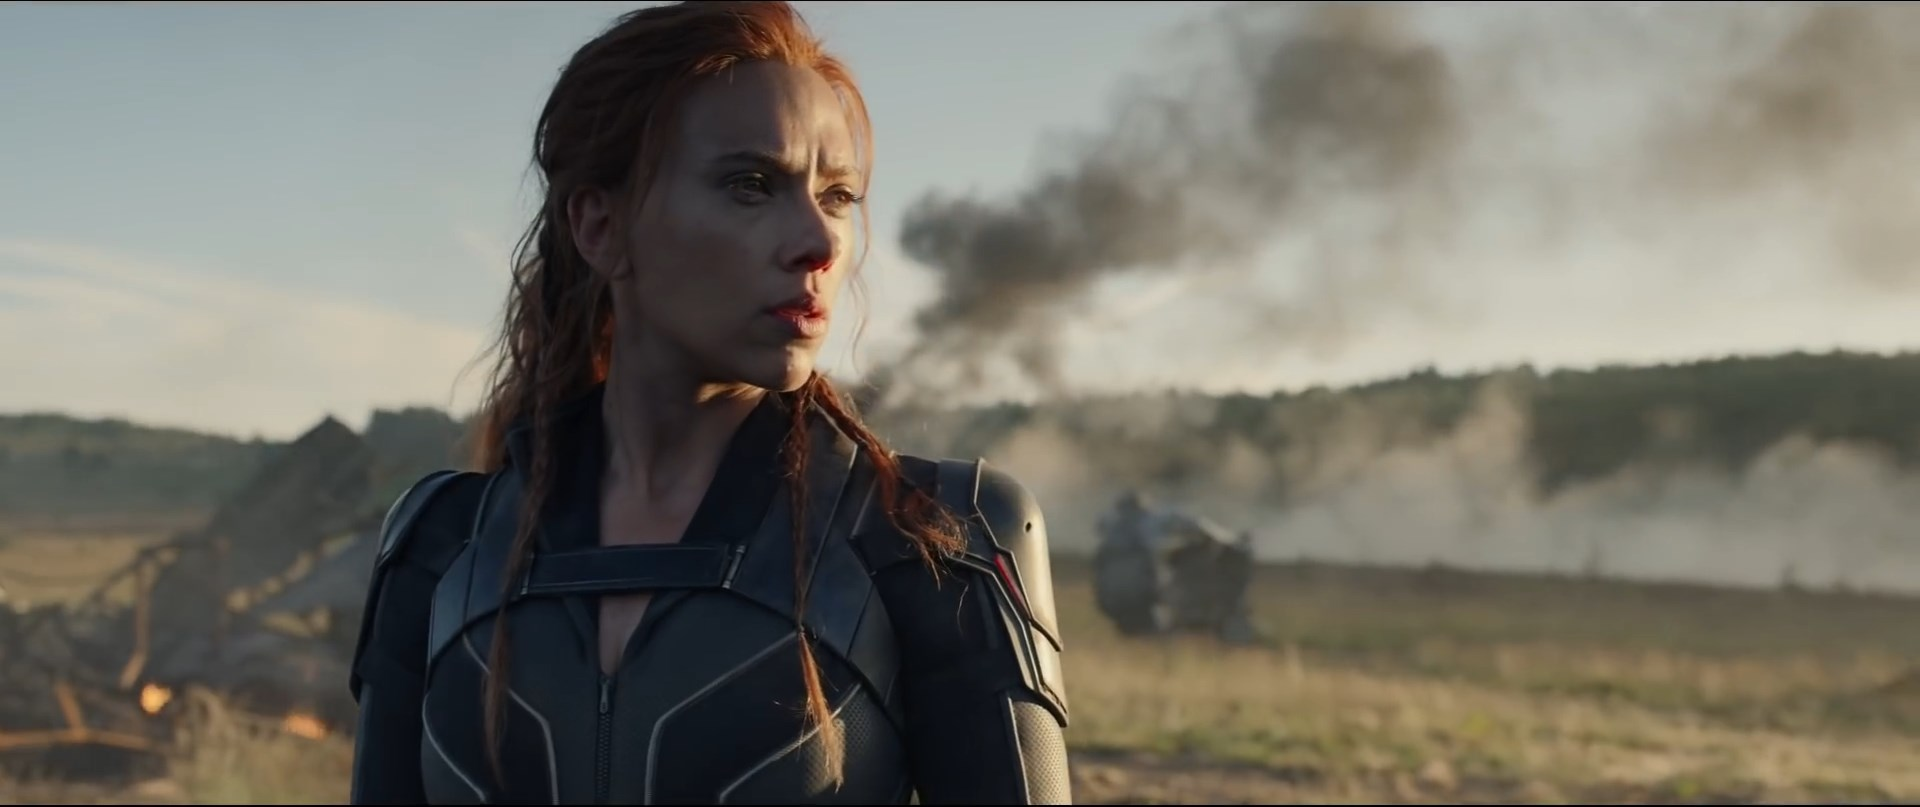 Marvel Black Widow First Official Trailer